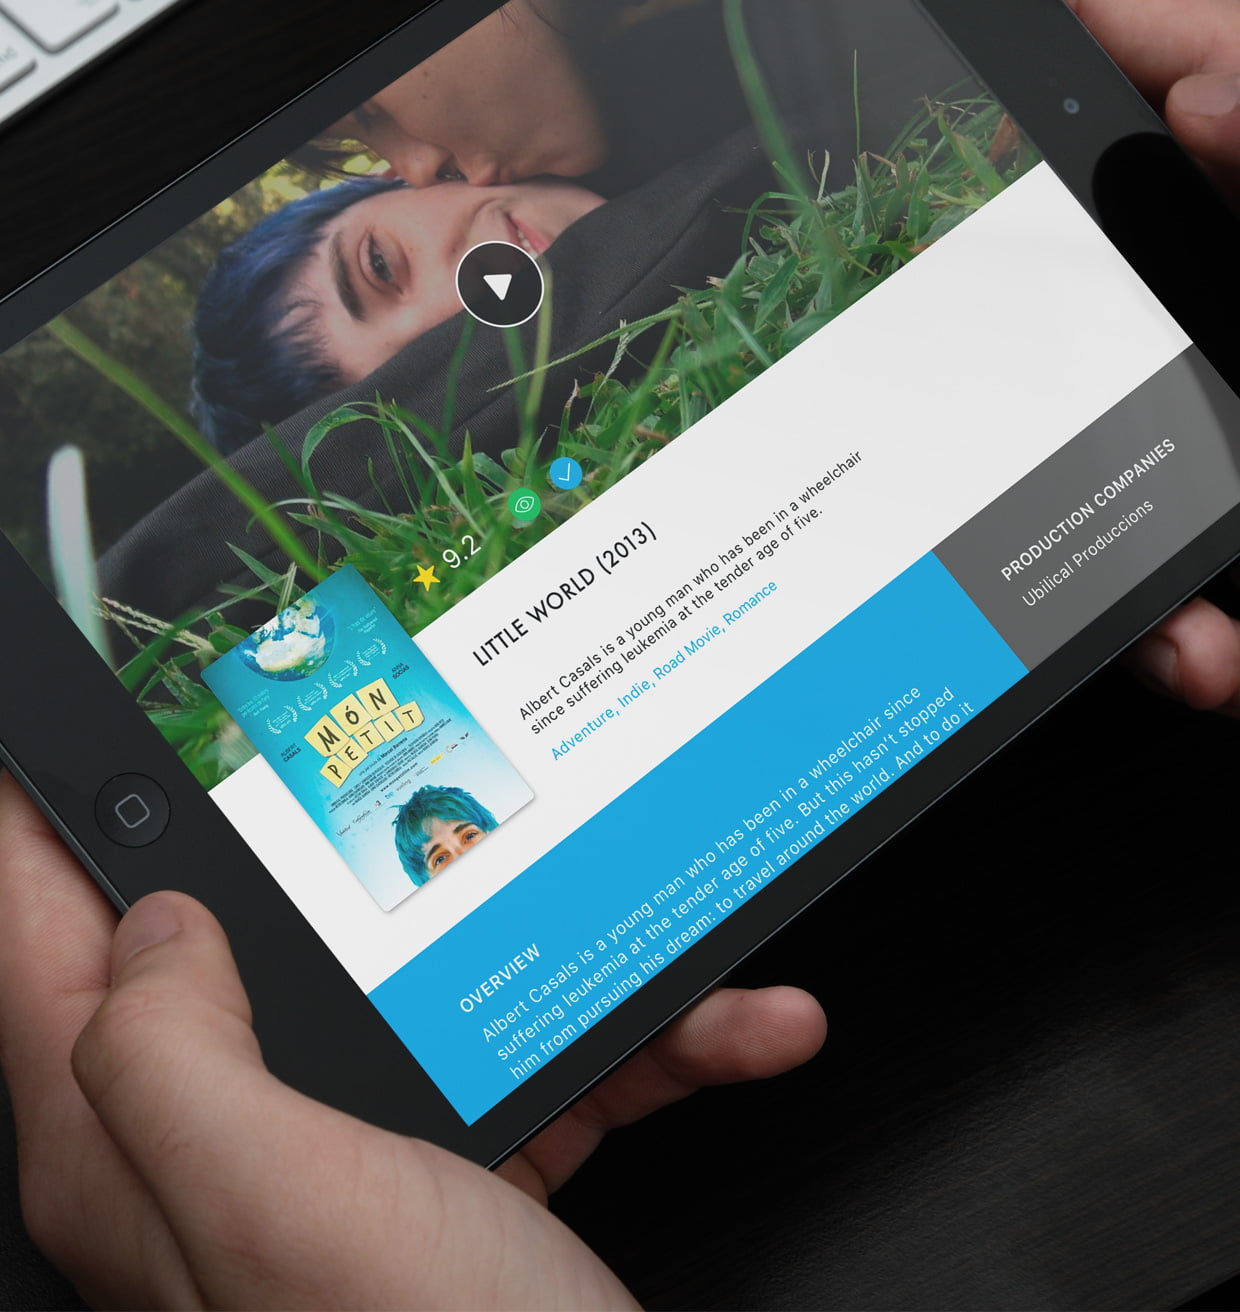 Discover the best of documentary filmmaking on your iPhone, iPad and Apple TV with GuideDoc